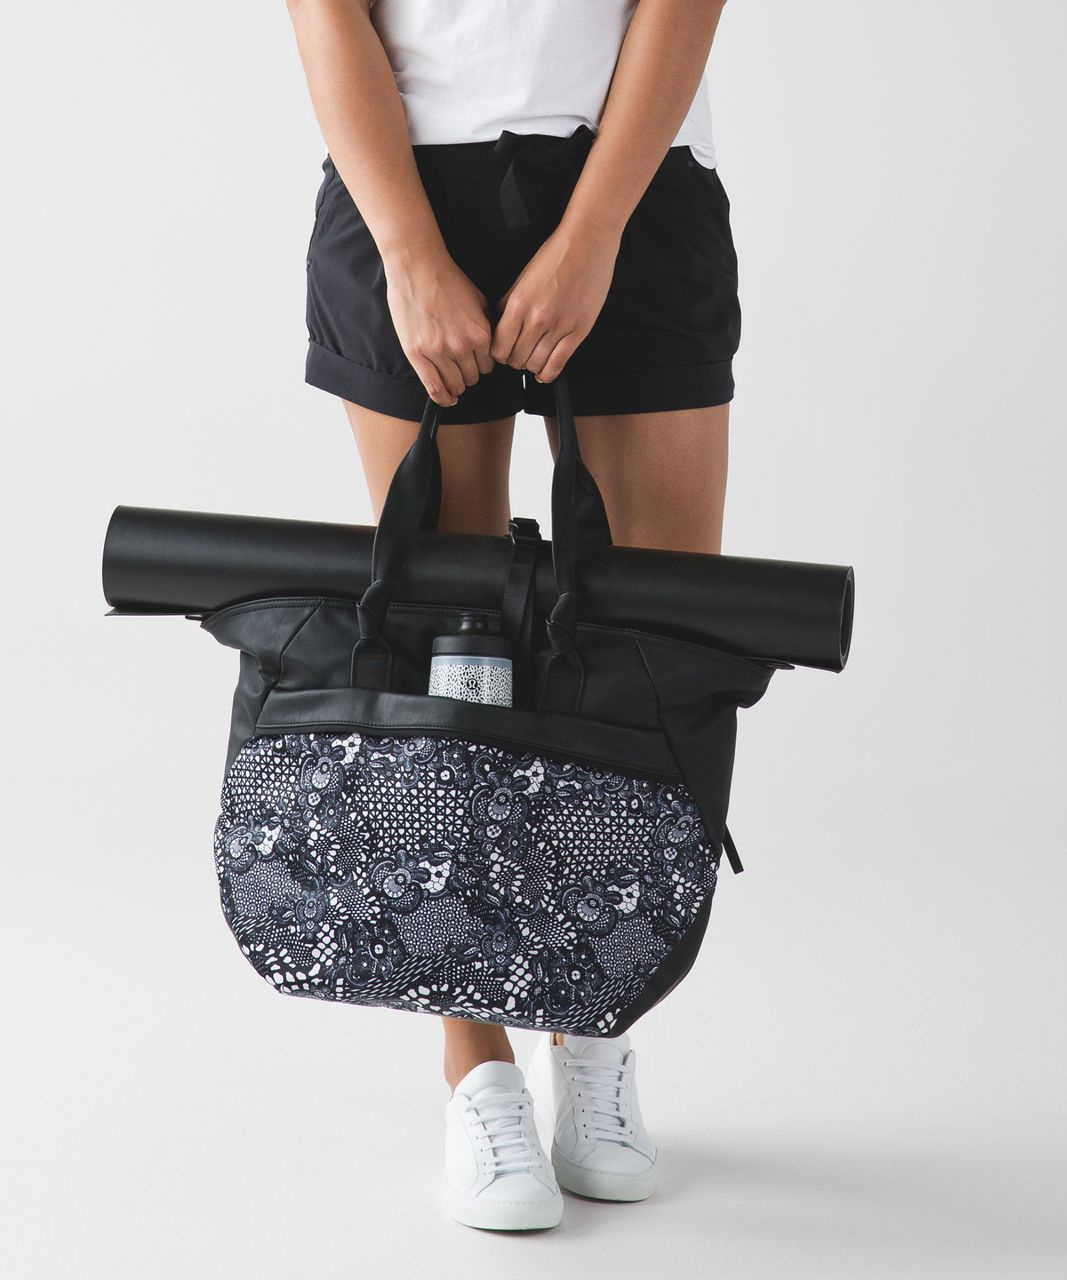 0d299914f3 Lululemon Everything Bag - Black / Pretty Lace White Black - lulu fanatics